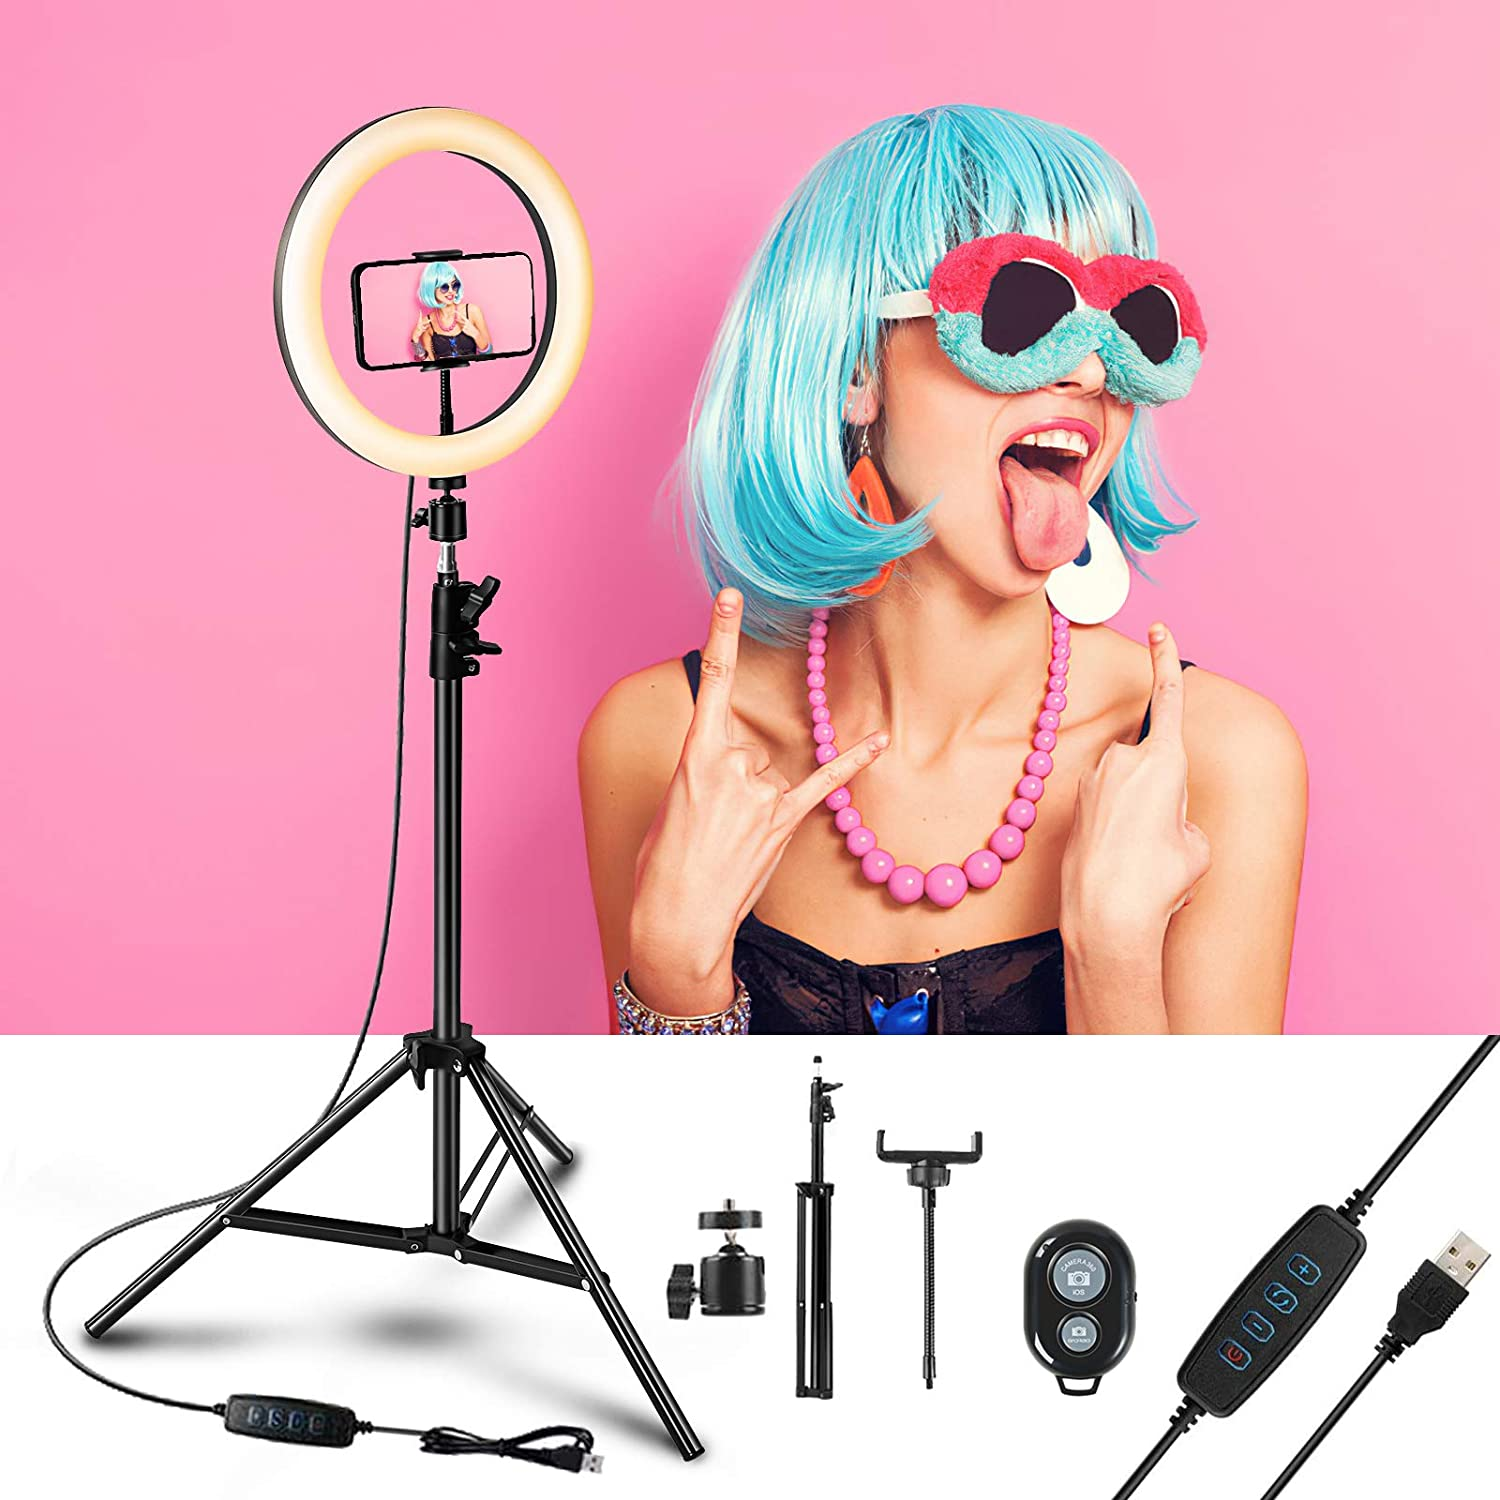 Digi marker Selfie Ring Light with Tripod Stand(17.8